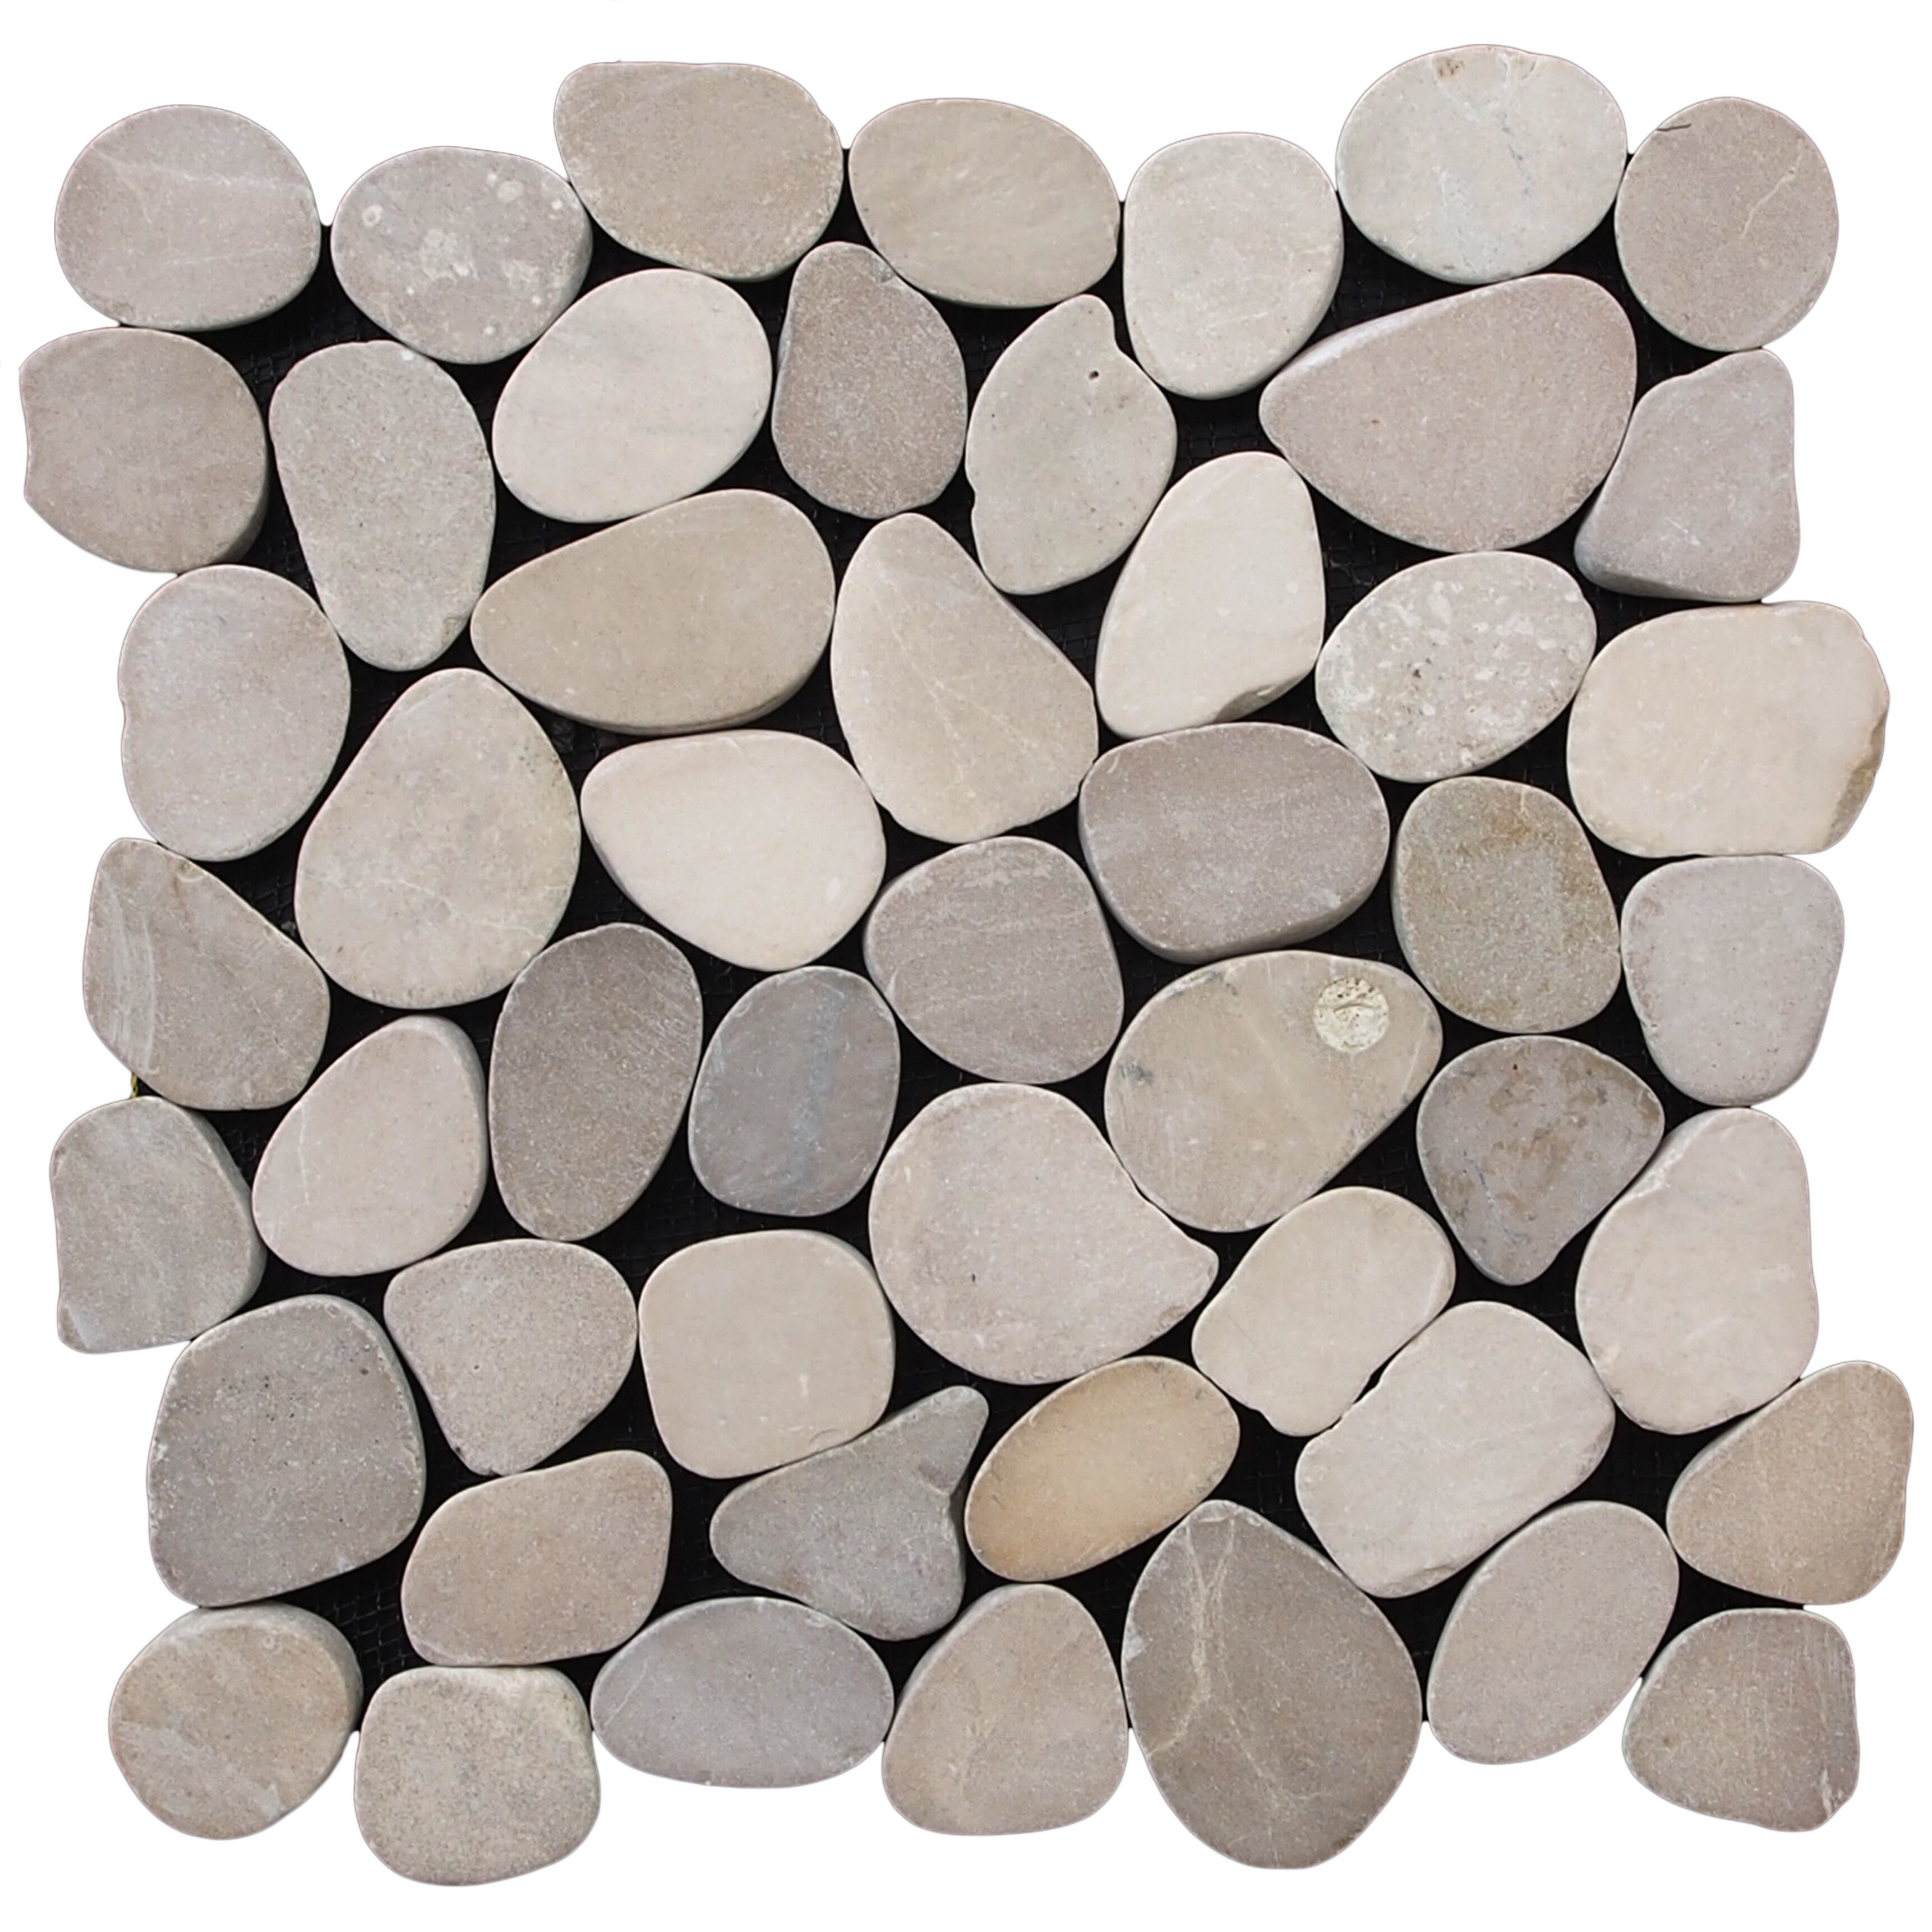 Sliced Pebble Random Sized Natural Stone Tile In Tan